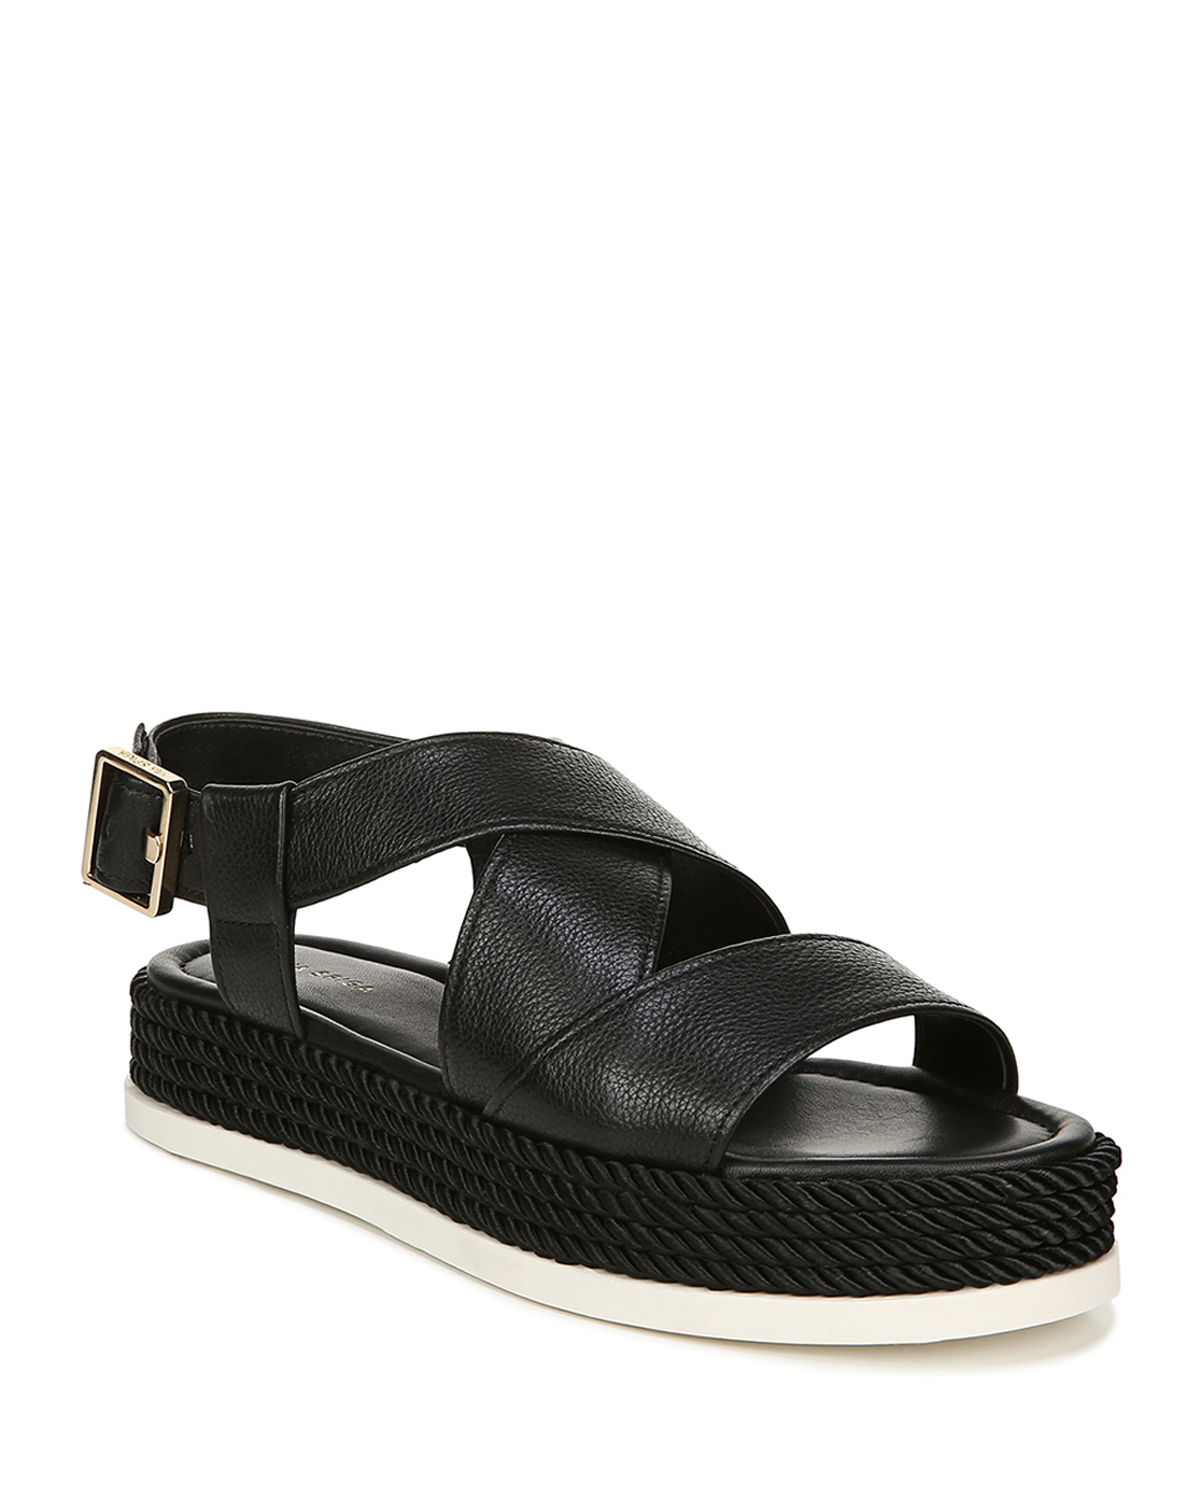 Via Spiga GRAYCE FLATFORM SANDALS